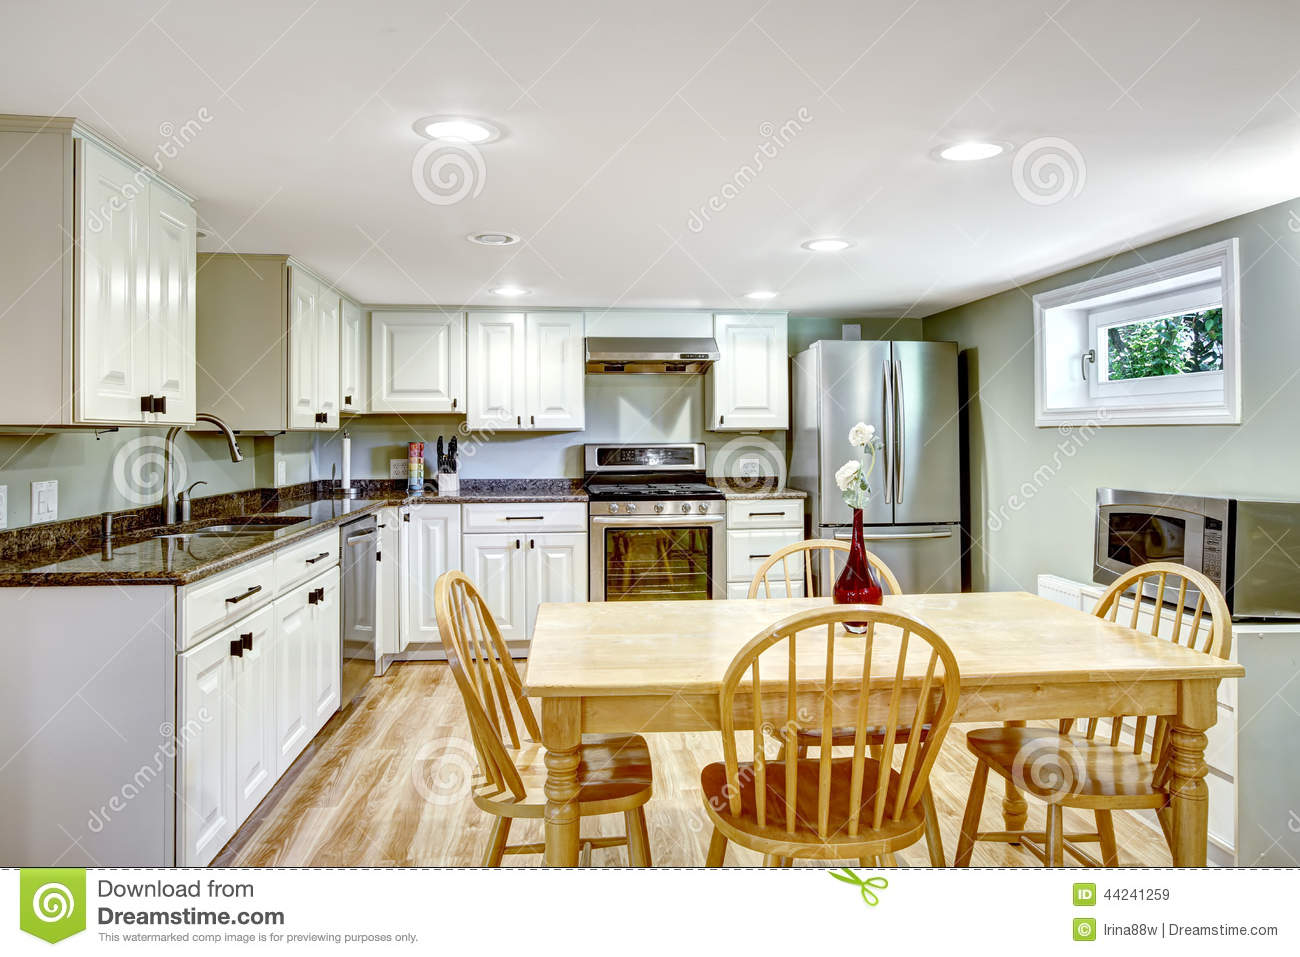 Basement Kitchen Basement Kitchen Room Mother In Law Apartment Stock Photo Image